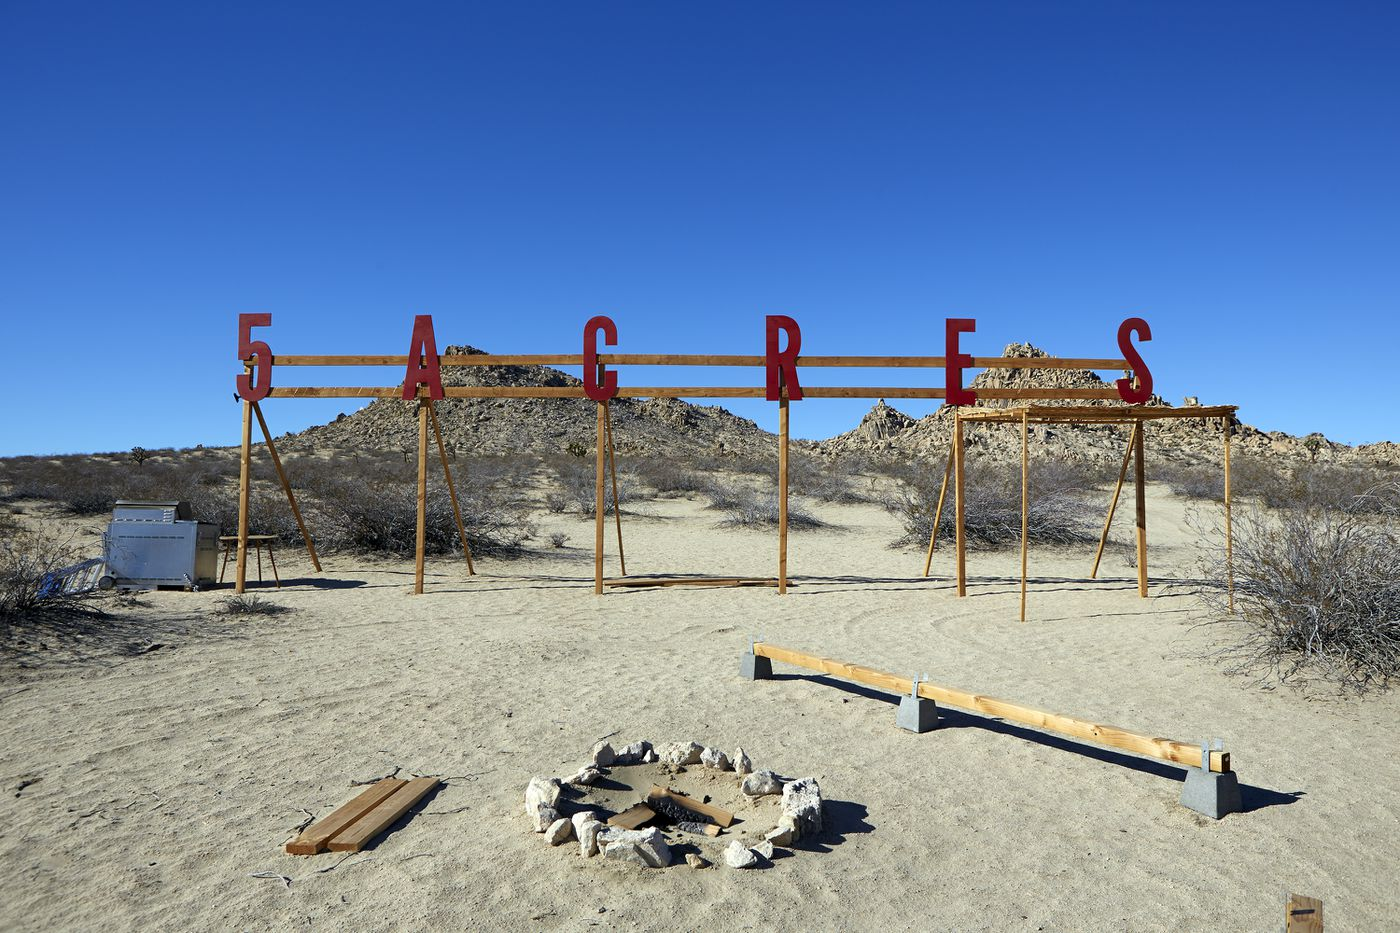 The space at 5 Acres, a sign that says 5 Acres in red, with a fire pit, surrounded by desert.